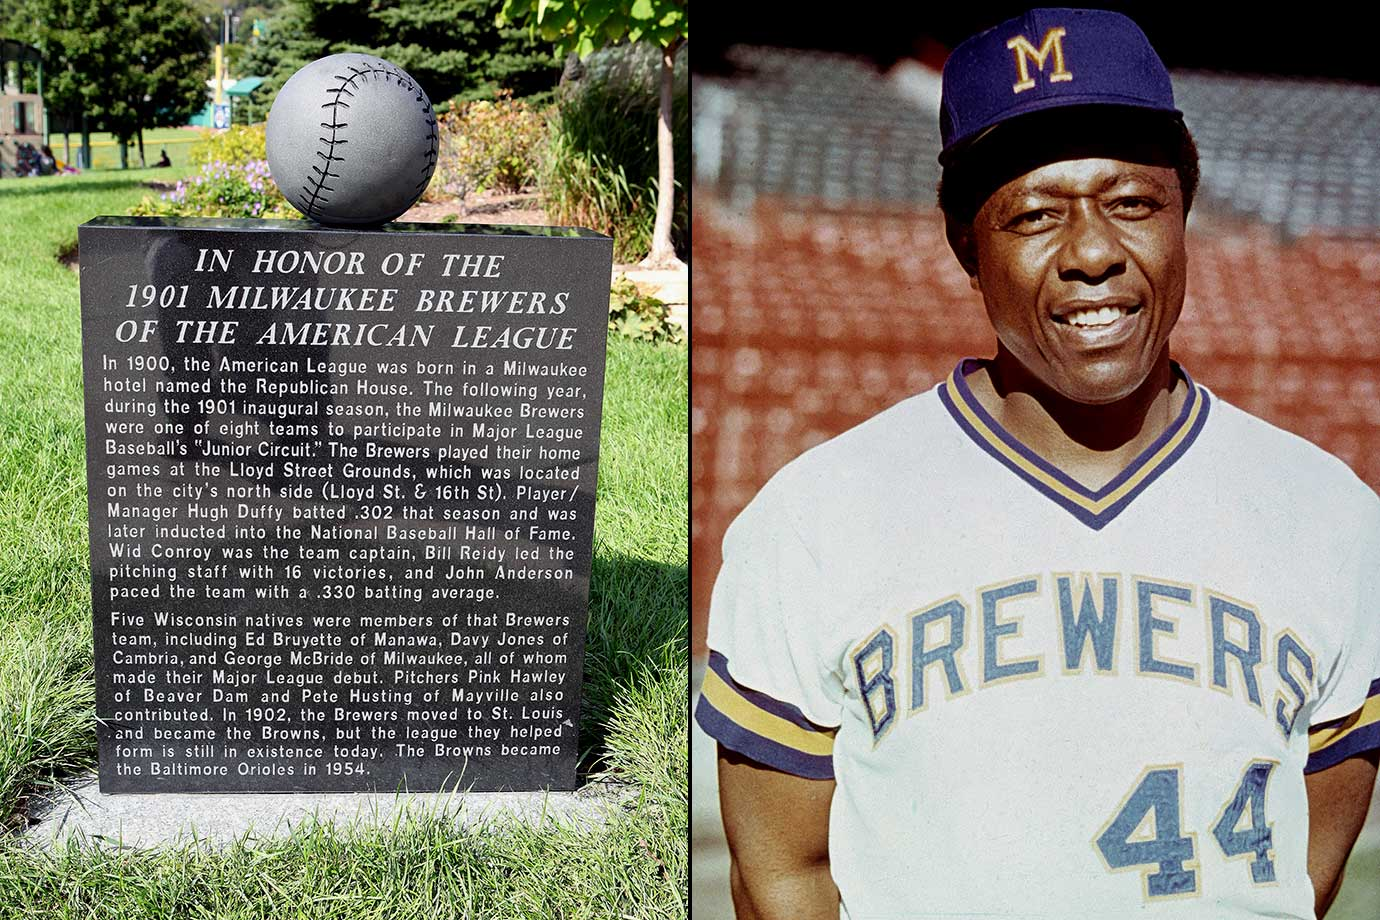 Milwaukee had the Brewers for just one year (1901) before they bolted to St. Louis and became the Browns. Then, following the 1953 season, they moved to Baltimore and became the Orioles. Milwaukee didn't have another MLB team until the Seattle Pilots moved there in 1970 and changed their name to the Brewers.